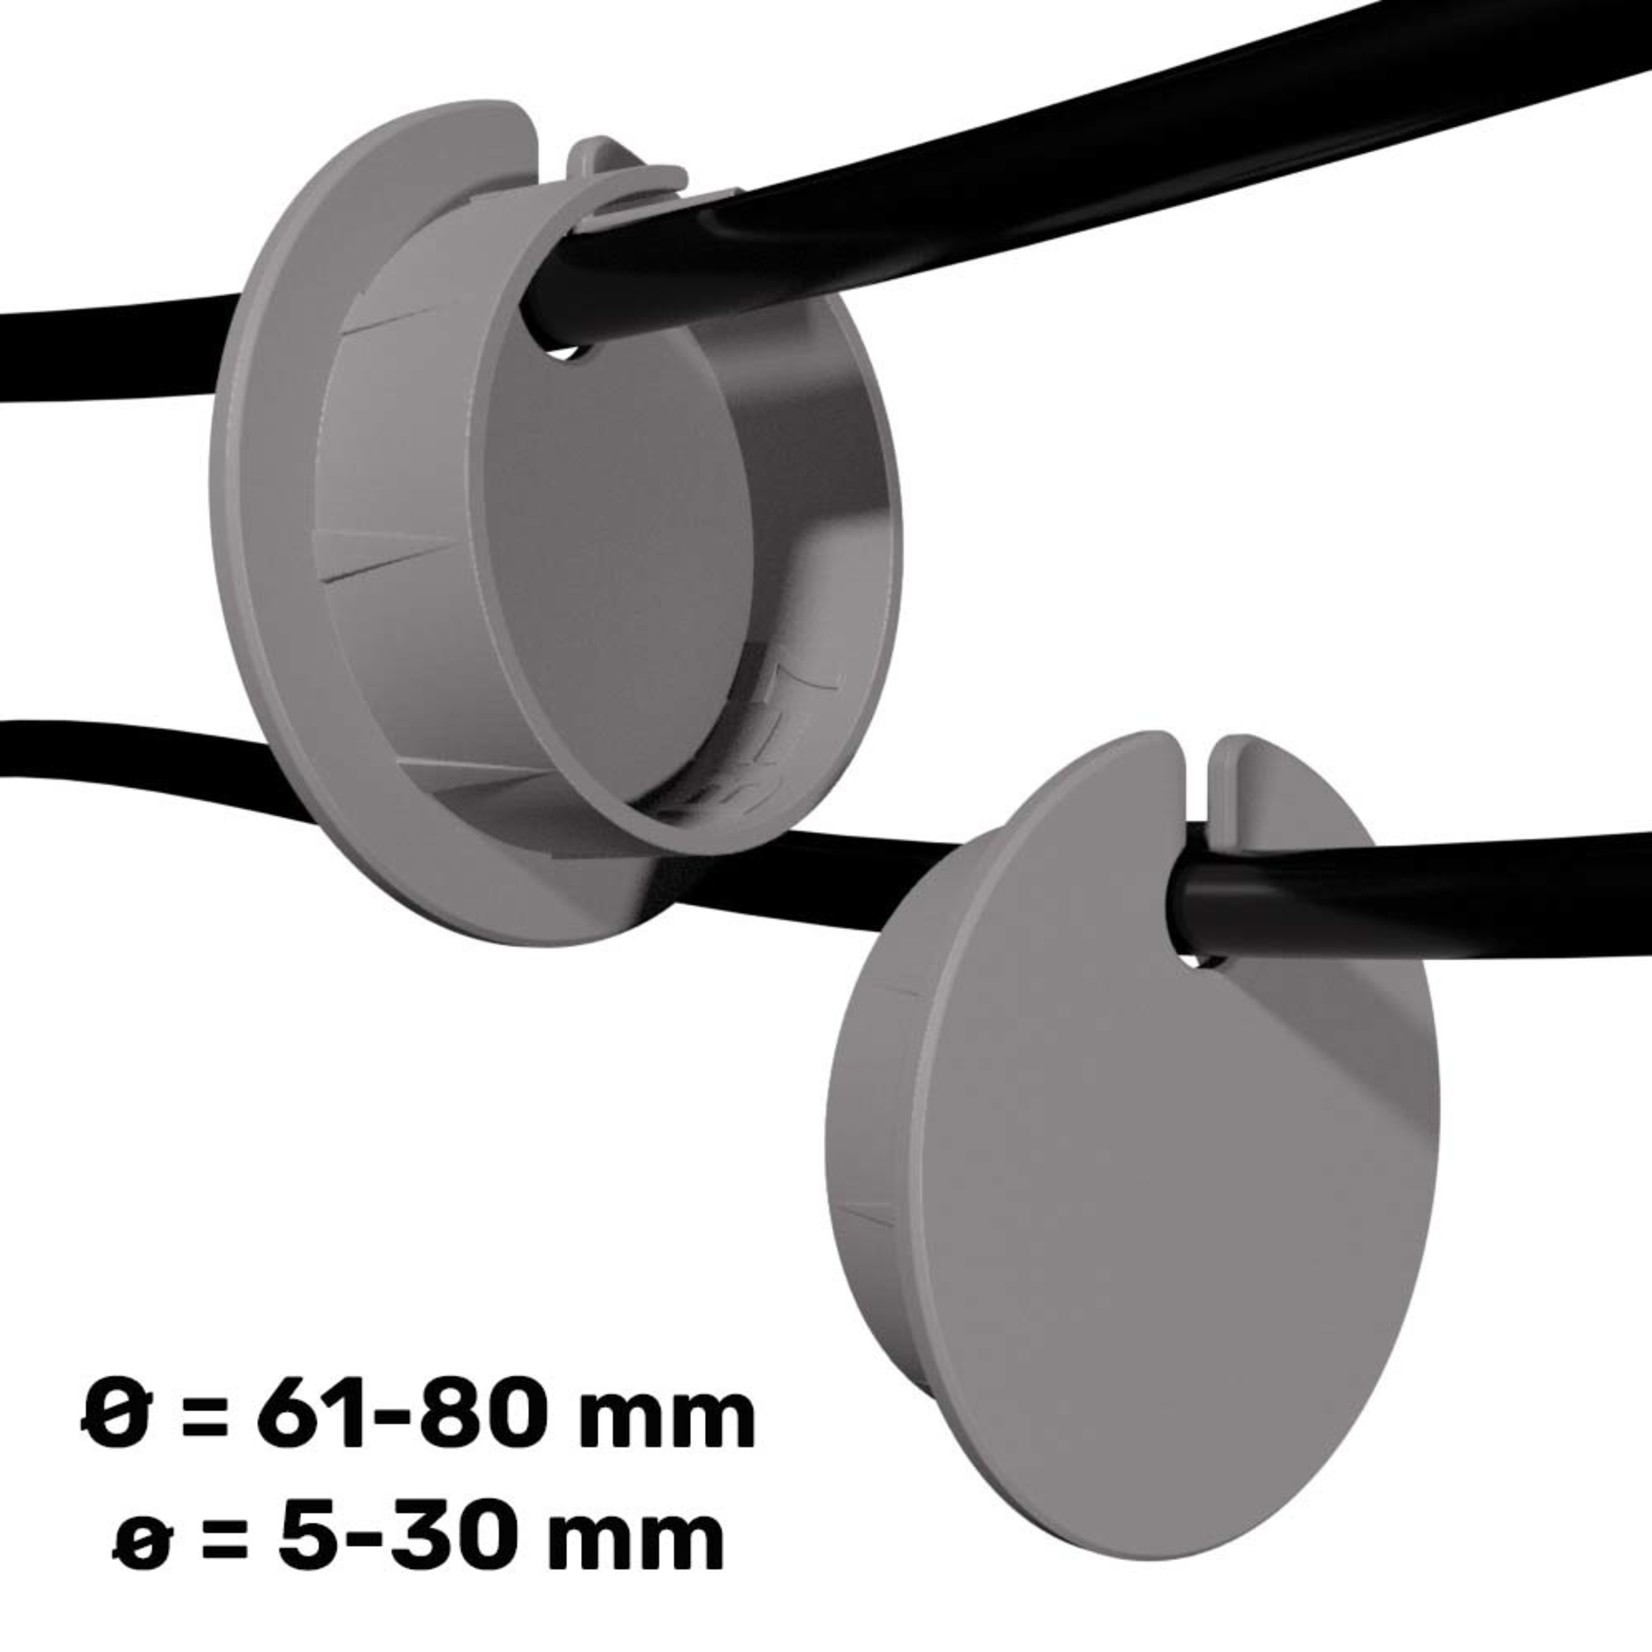 Umake Side cableguide Ø 61-80 mm | Customizable dimensions and colors